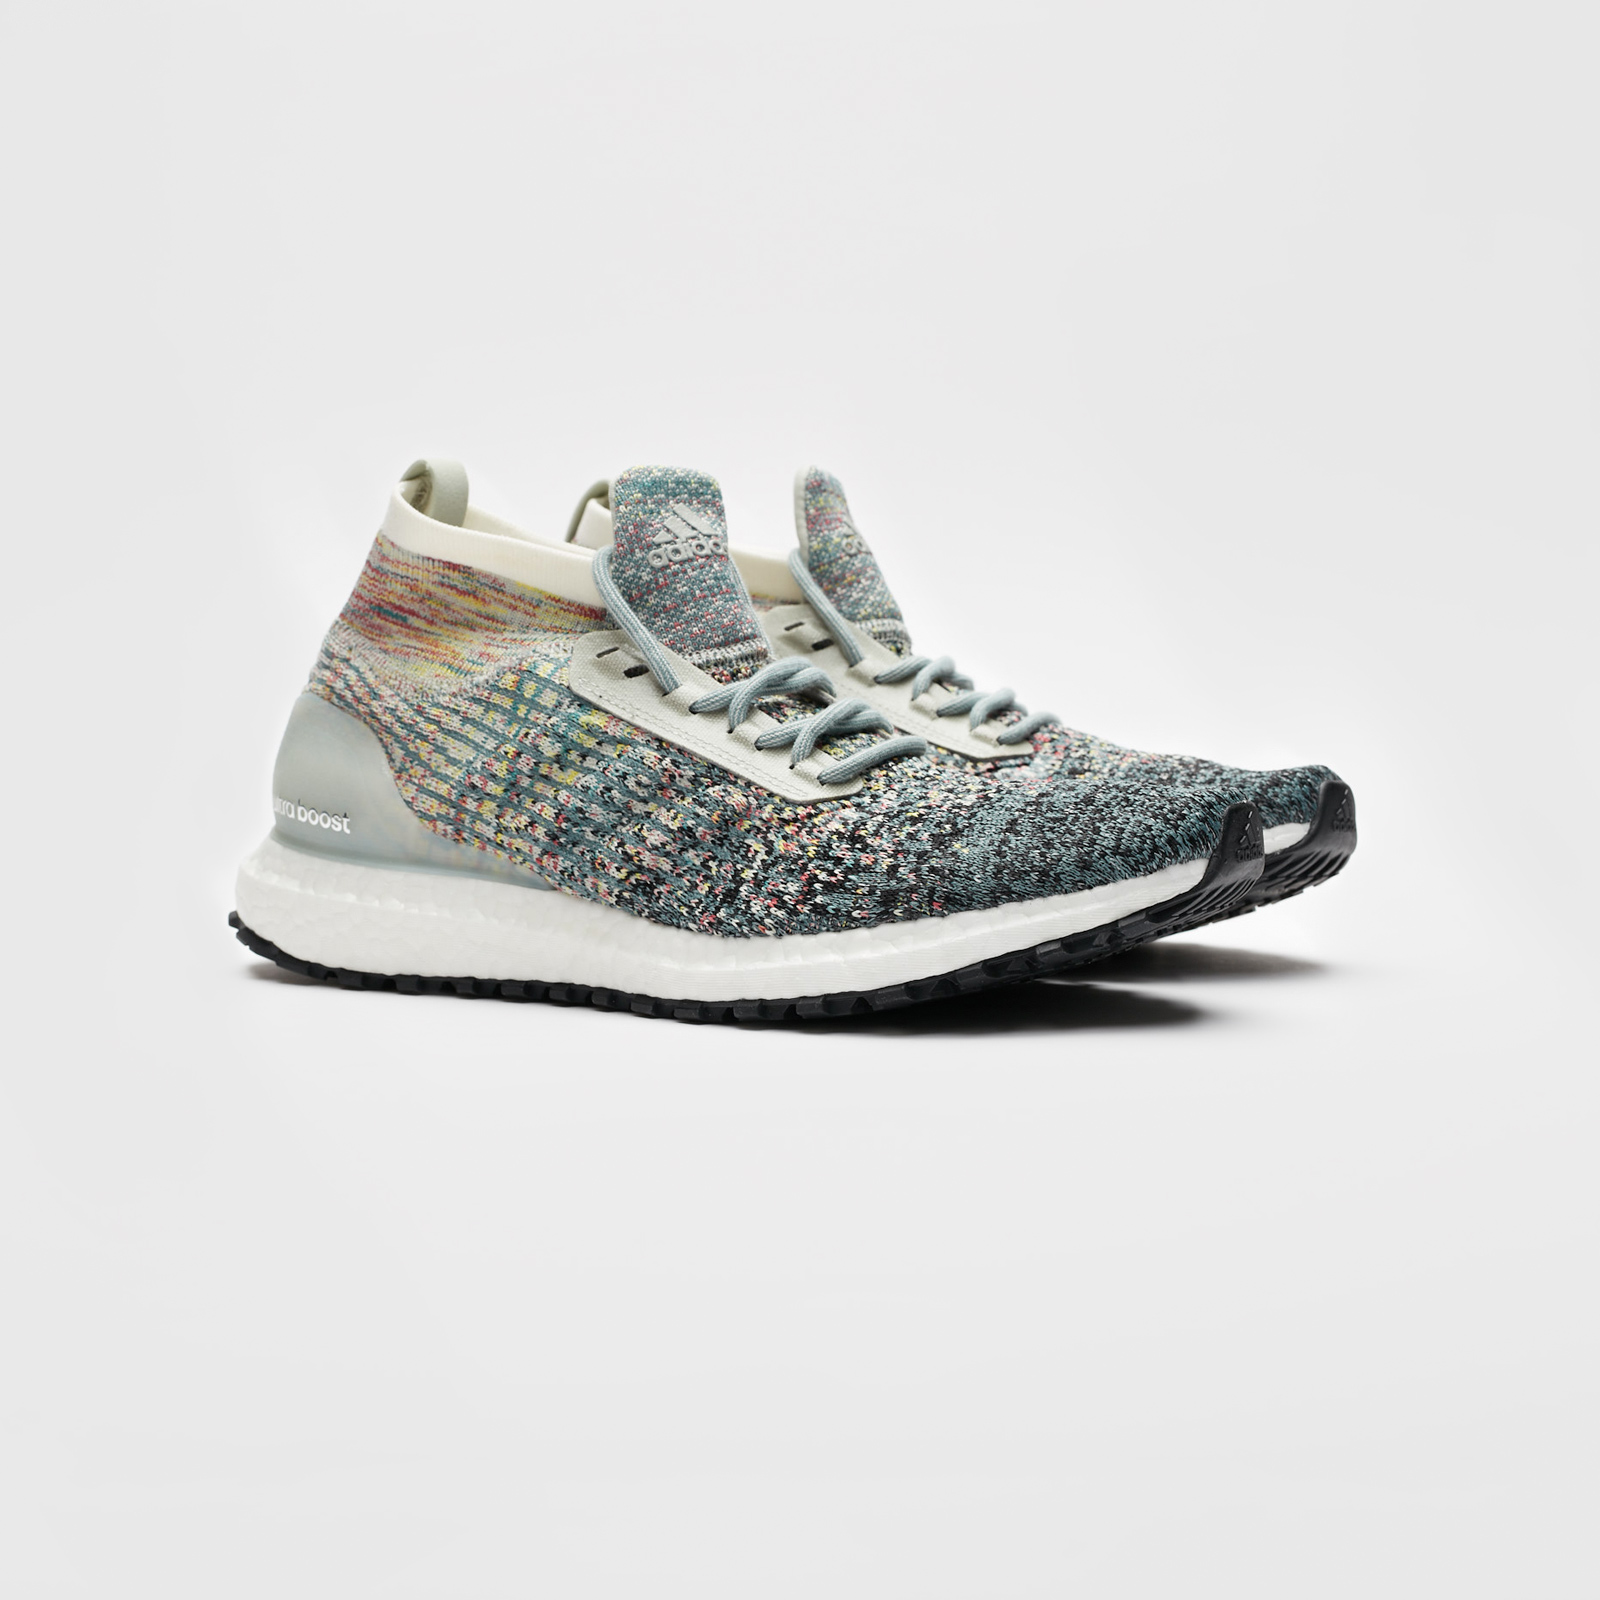 a9ca8789d6eed adidas Ultraboost All Terrain Ltd - Cm8254 - Sneakersnstuff ...